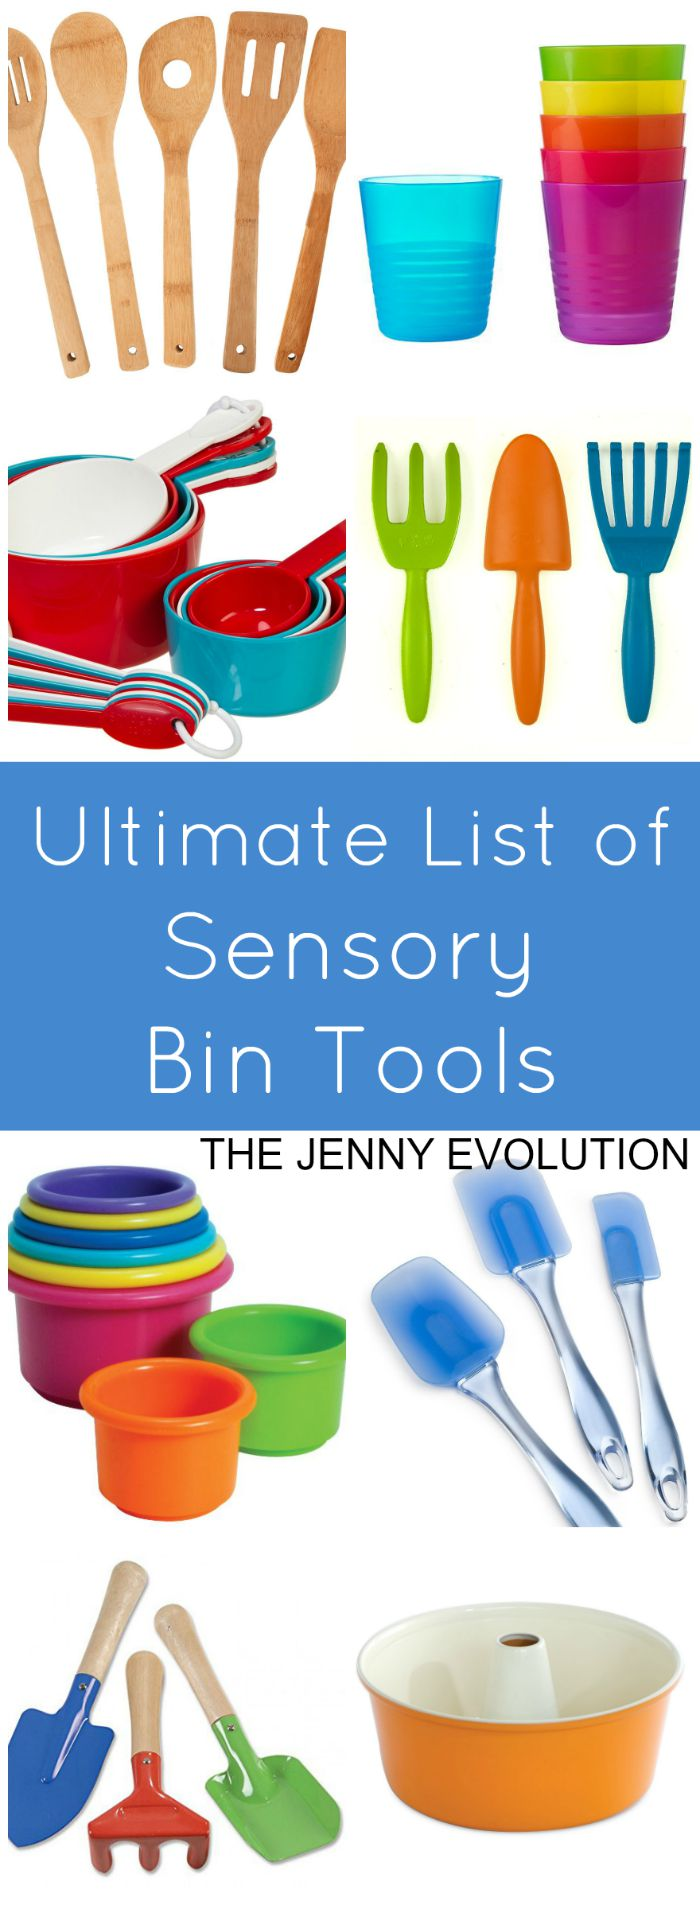 Ultimate List of Sensory Bin Tools | The Jenny Evolution